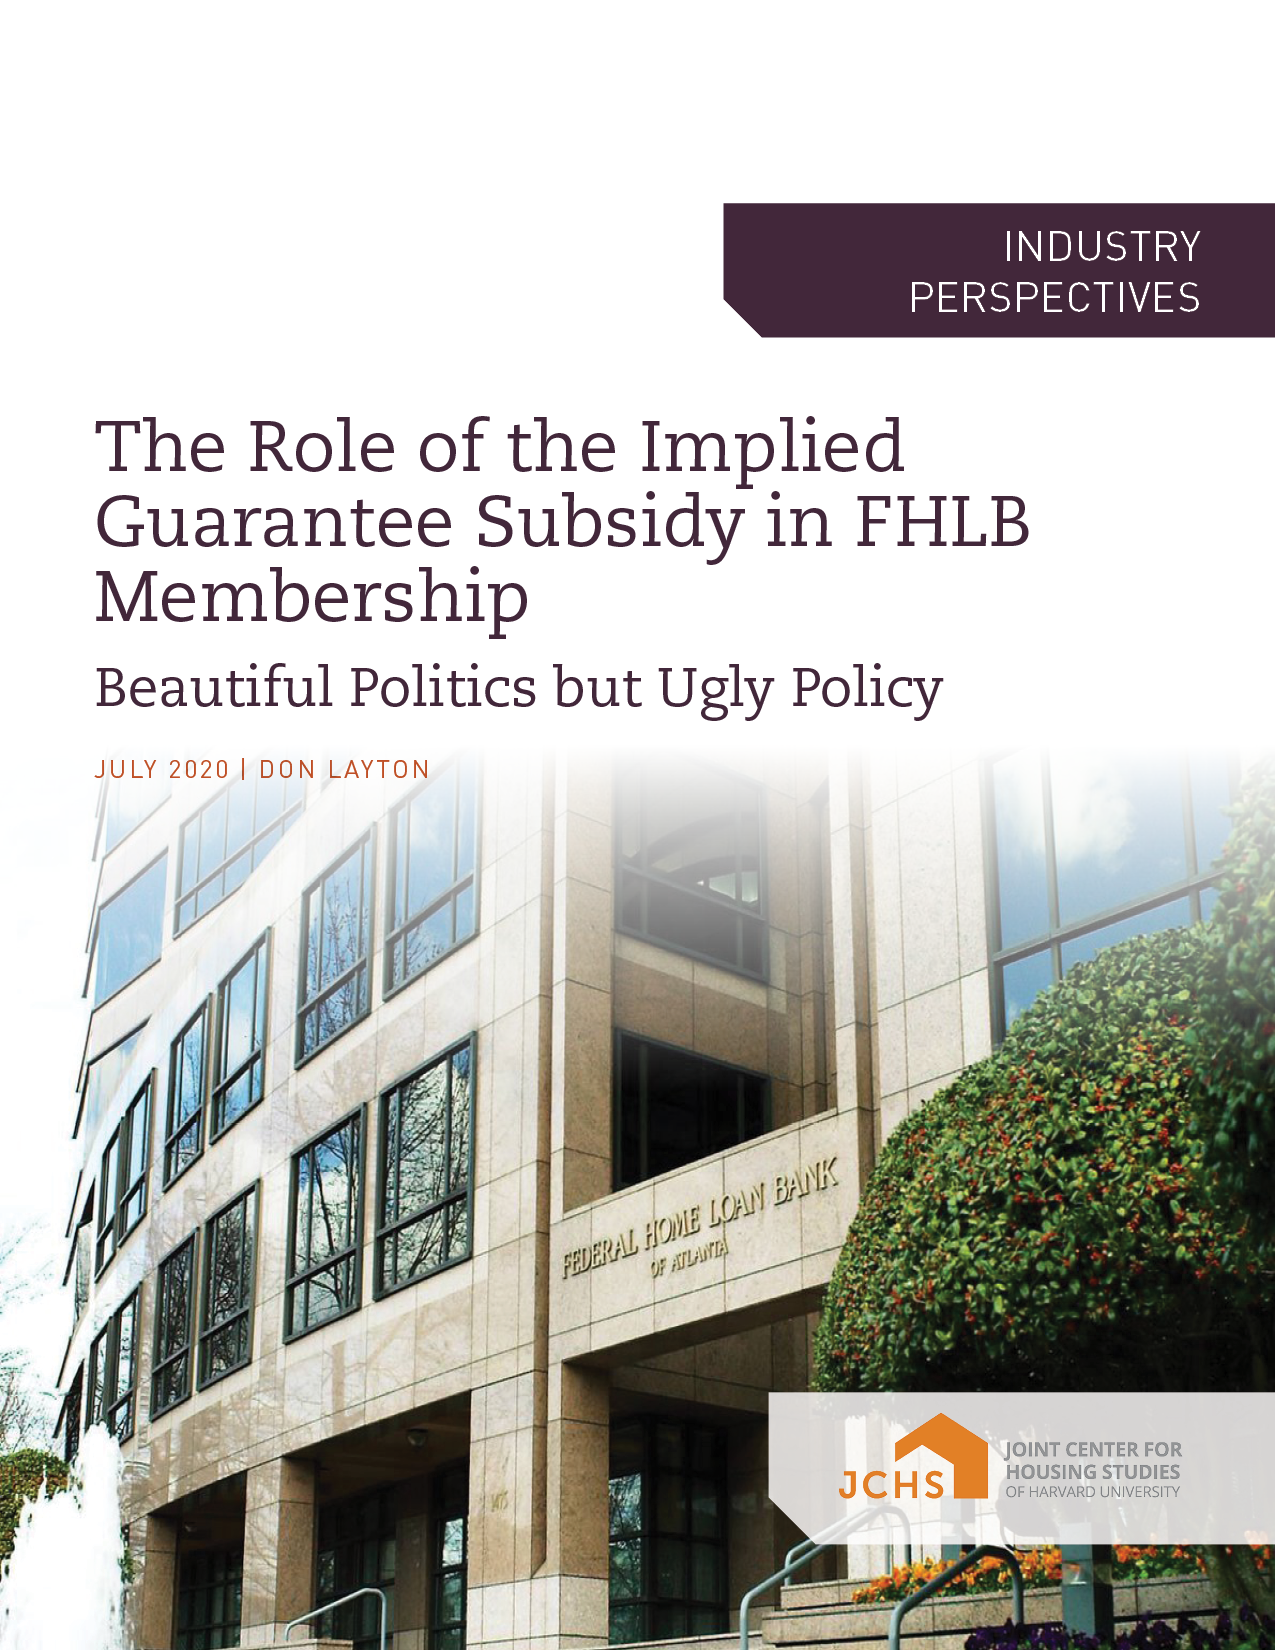 The Role of the Implied Guarantee Subsidy in FHLB Membership: Beautiful Politics but Ugly Policy